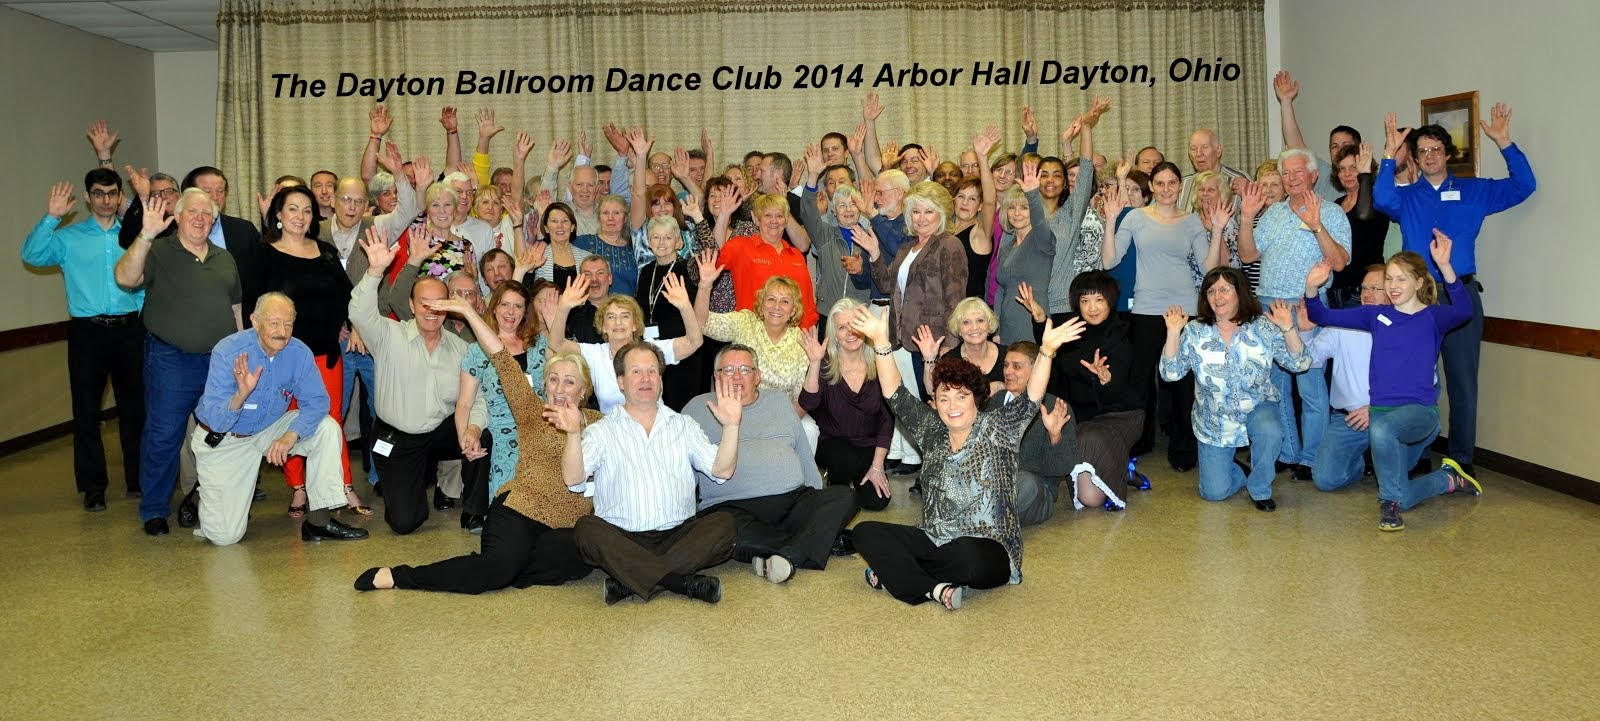 Dayton Ballroom Dance Club Monday Night Group Dance Lessons